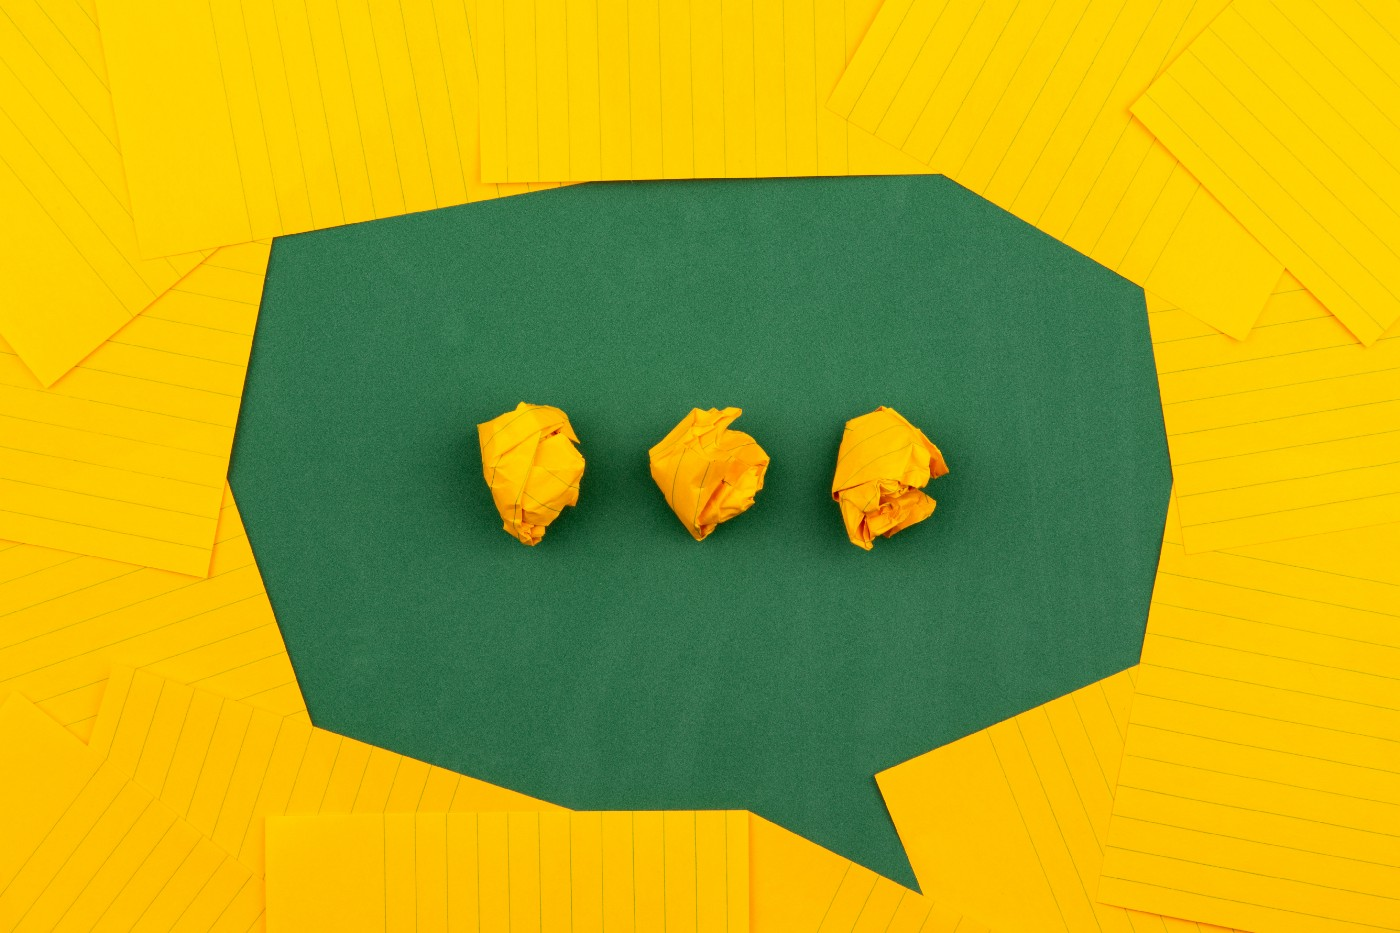 Speech bubble with three balled-up pieces of paper in it.